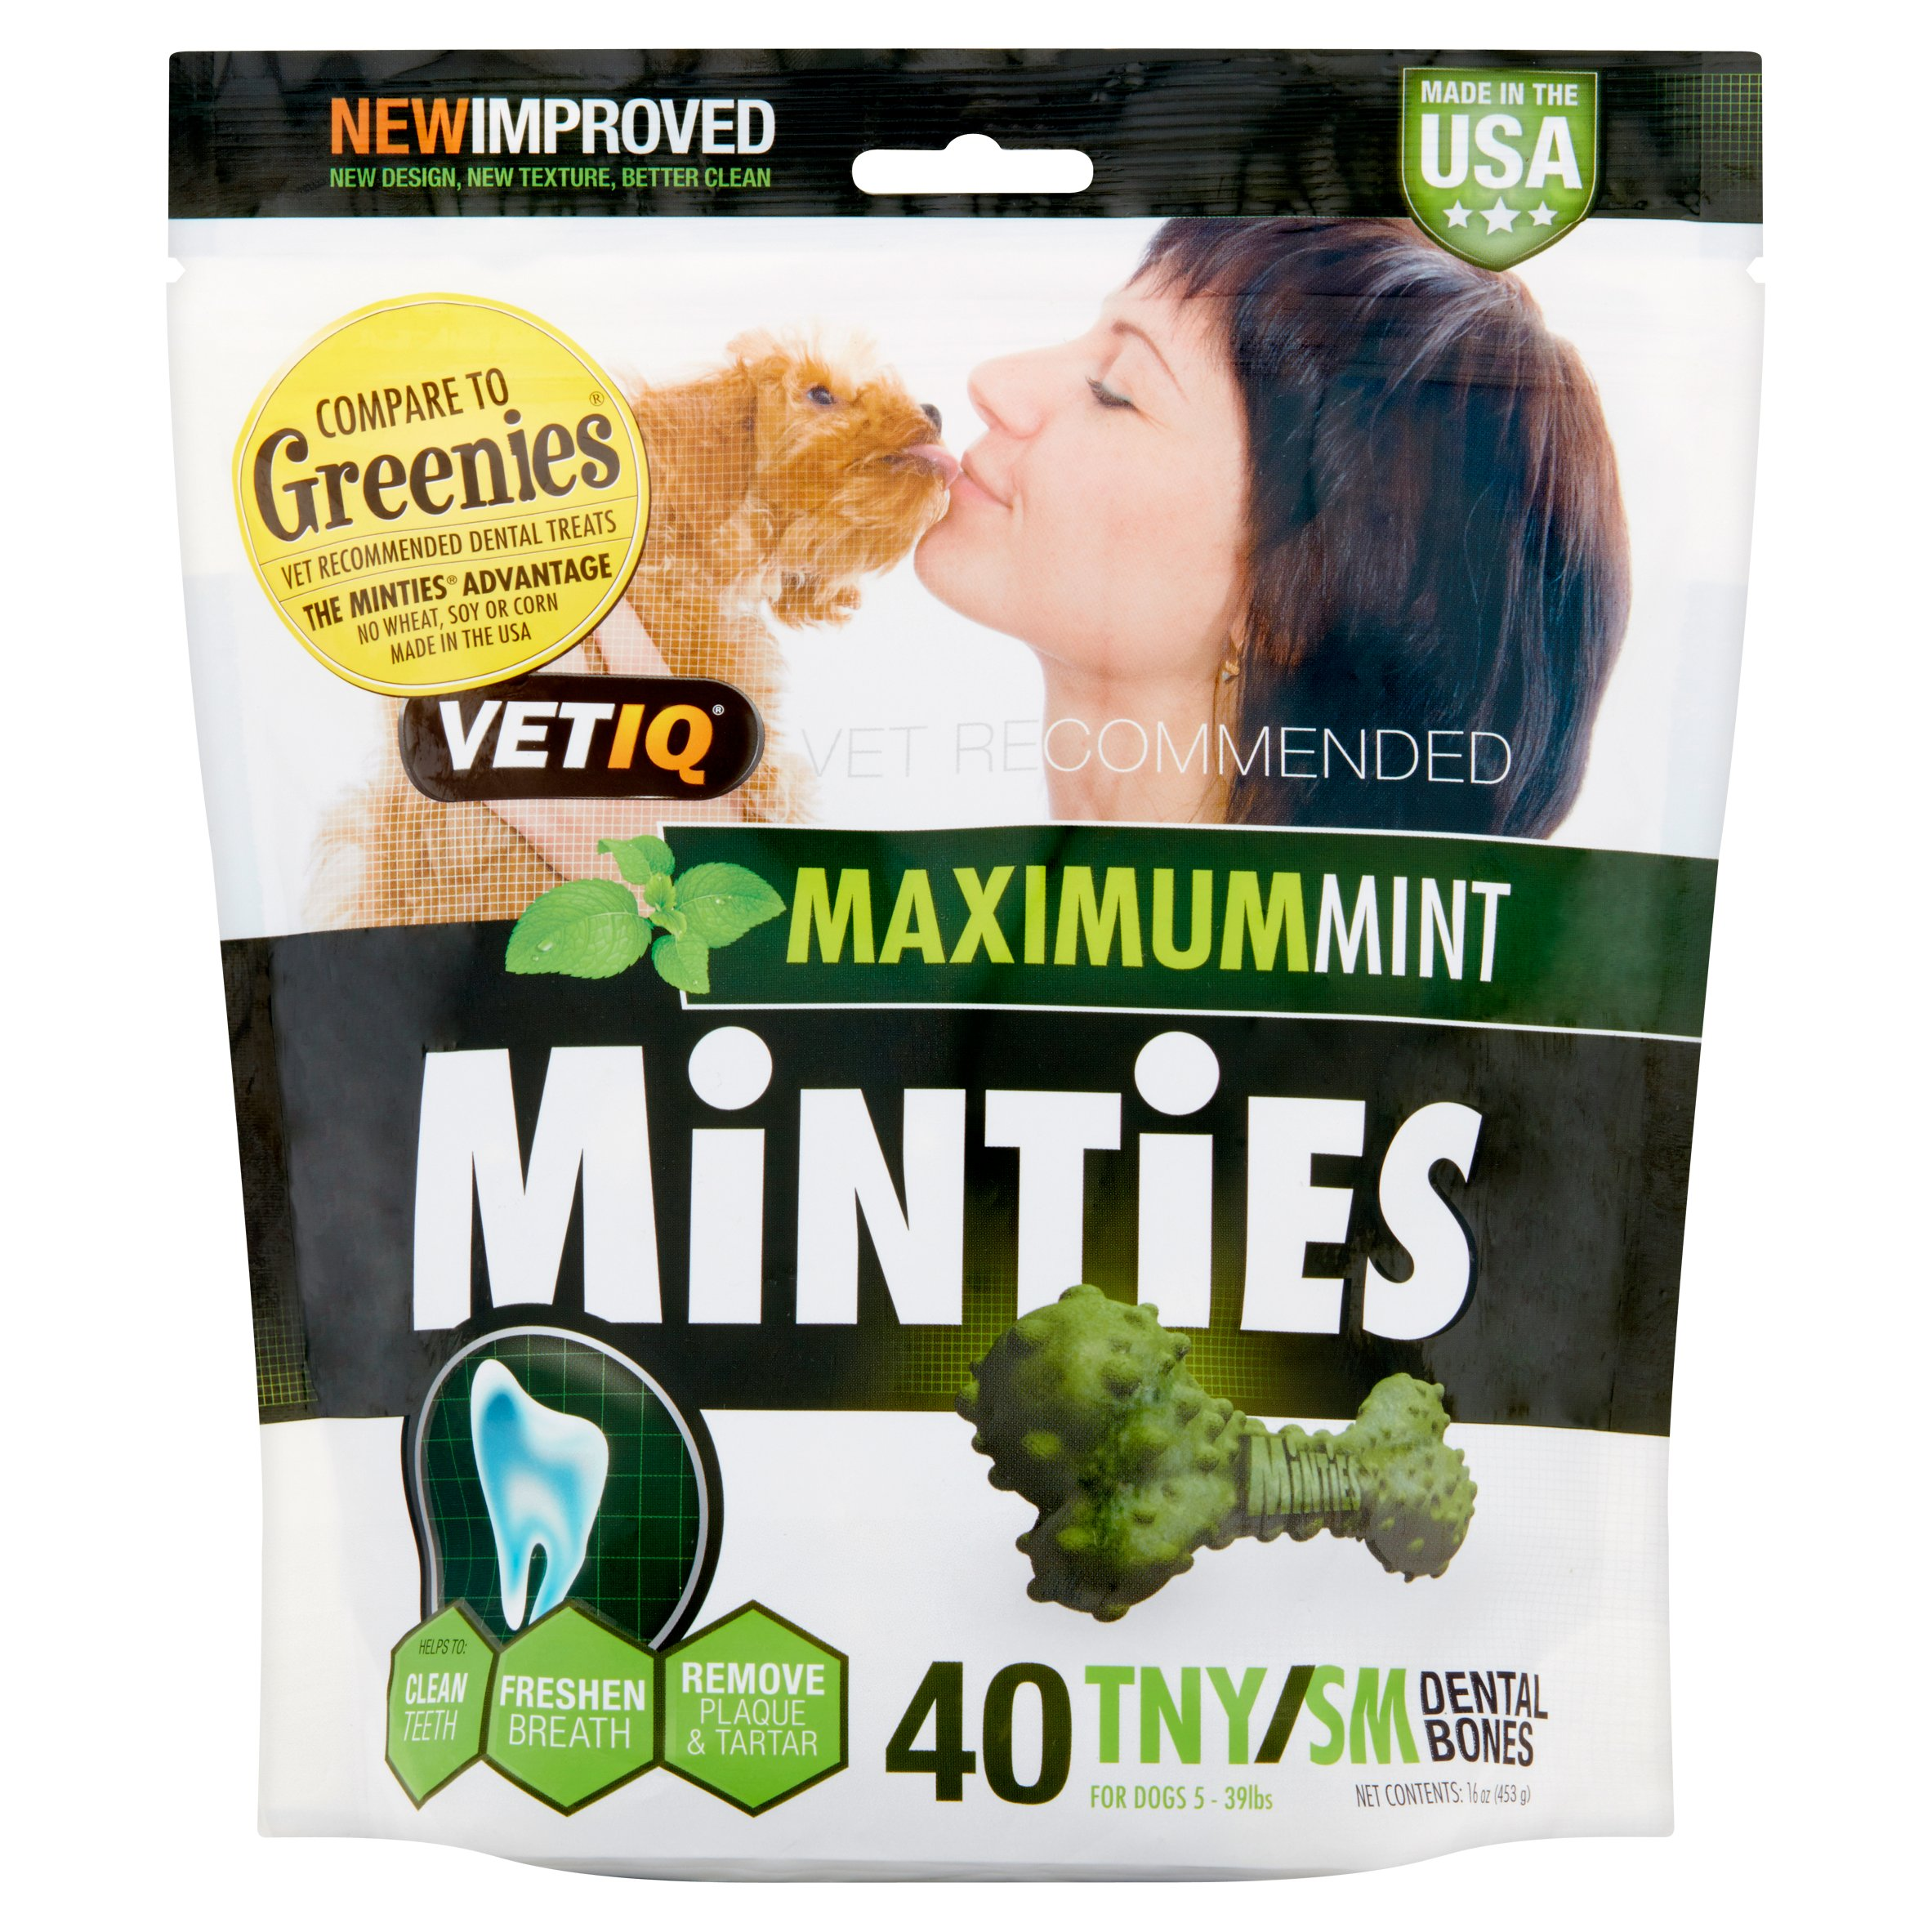 Minties Teeth Cleaner Dental Dog Treats Tiny/Small, 40 Count